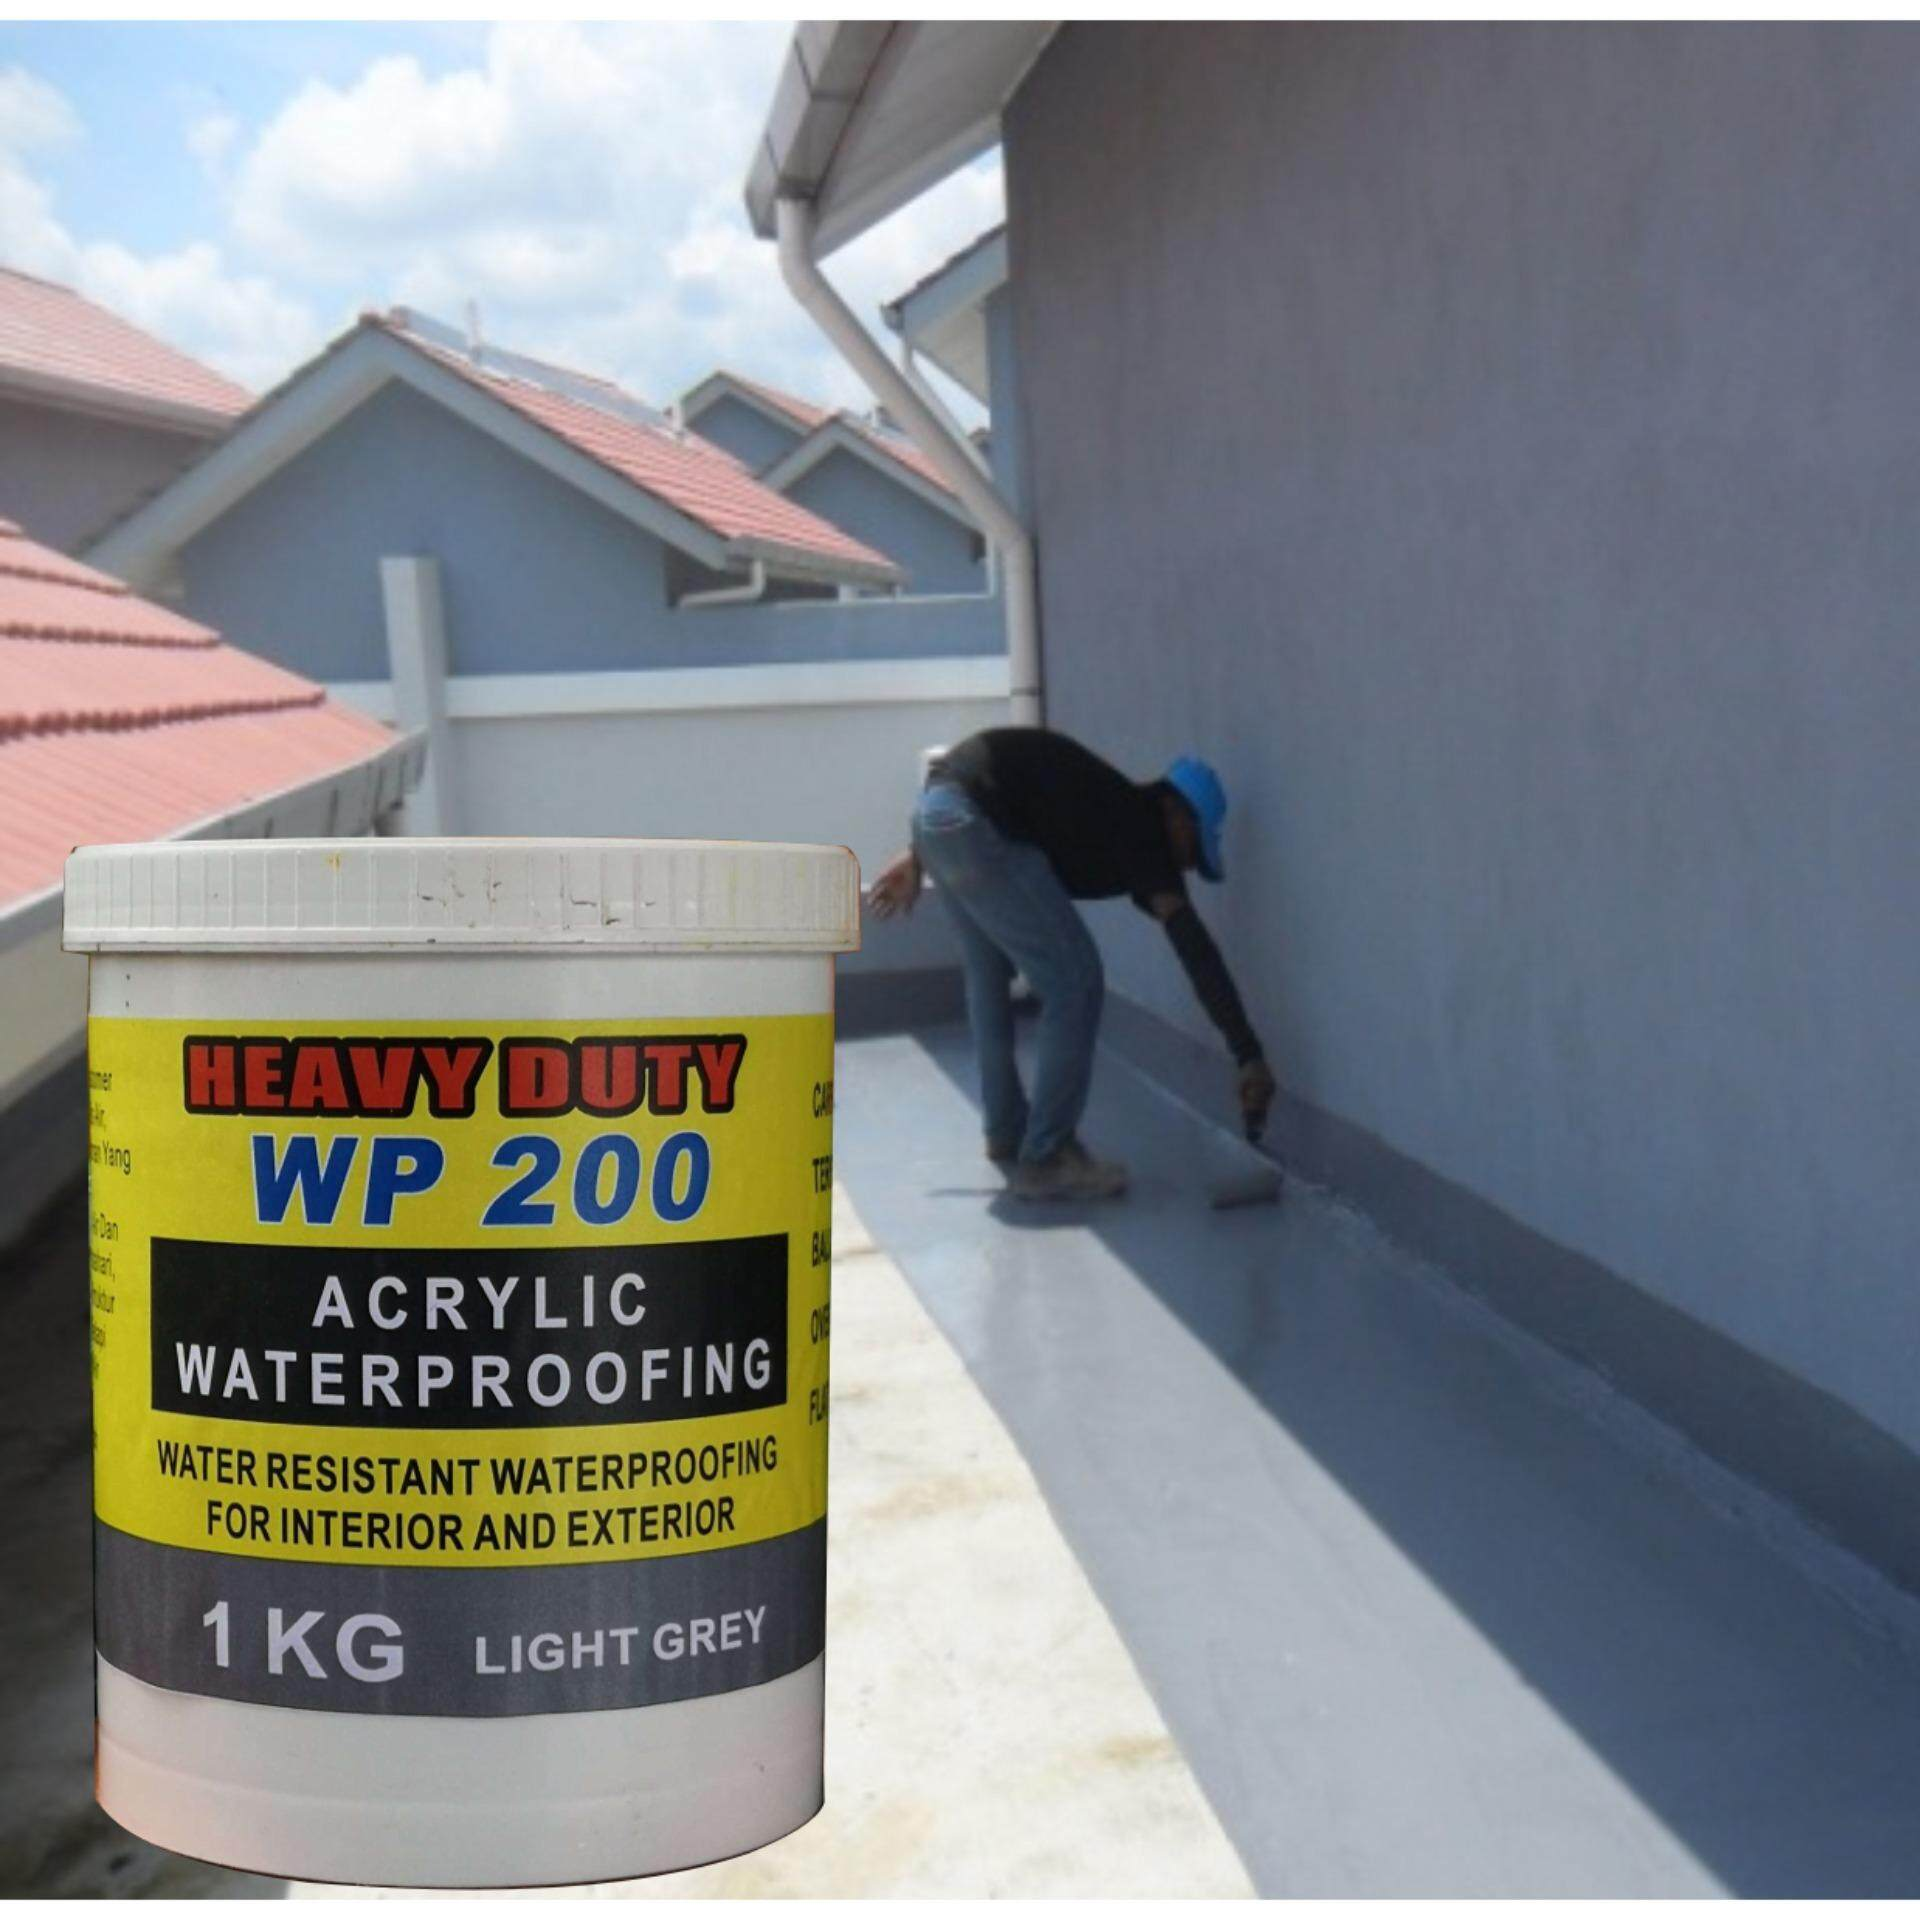 IKG LIGHT GREY WP 200 ACRYLIC WATERPROOFING FLEX HEAVY DUTY WATER RESISTANT WATERPROOFING FOR INTERIOR AND EXTERIOR CARPARK PORCH TERRACES BALCONY OVERHANG FLATROOF